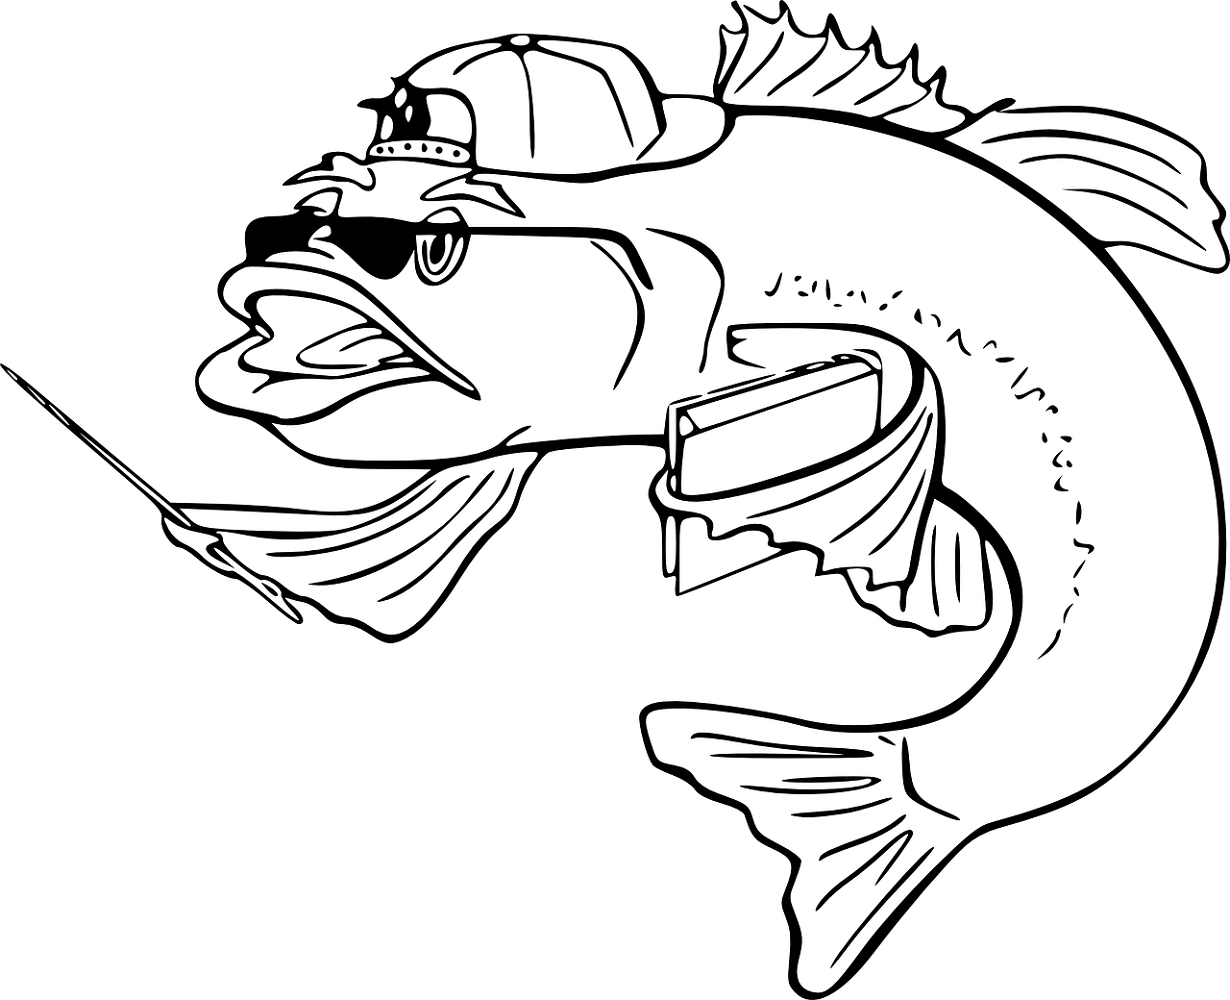 Color Pages Of Fish Kids Learning Activity Coloring Pictures Coloring Pages Kindergarten Coloring Pages